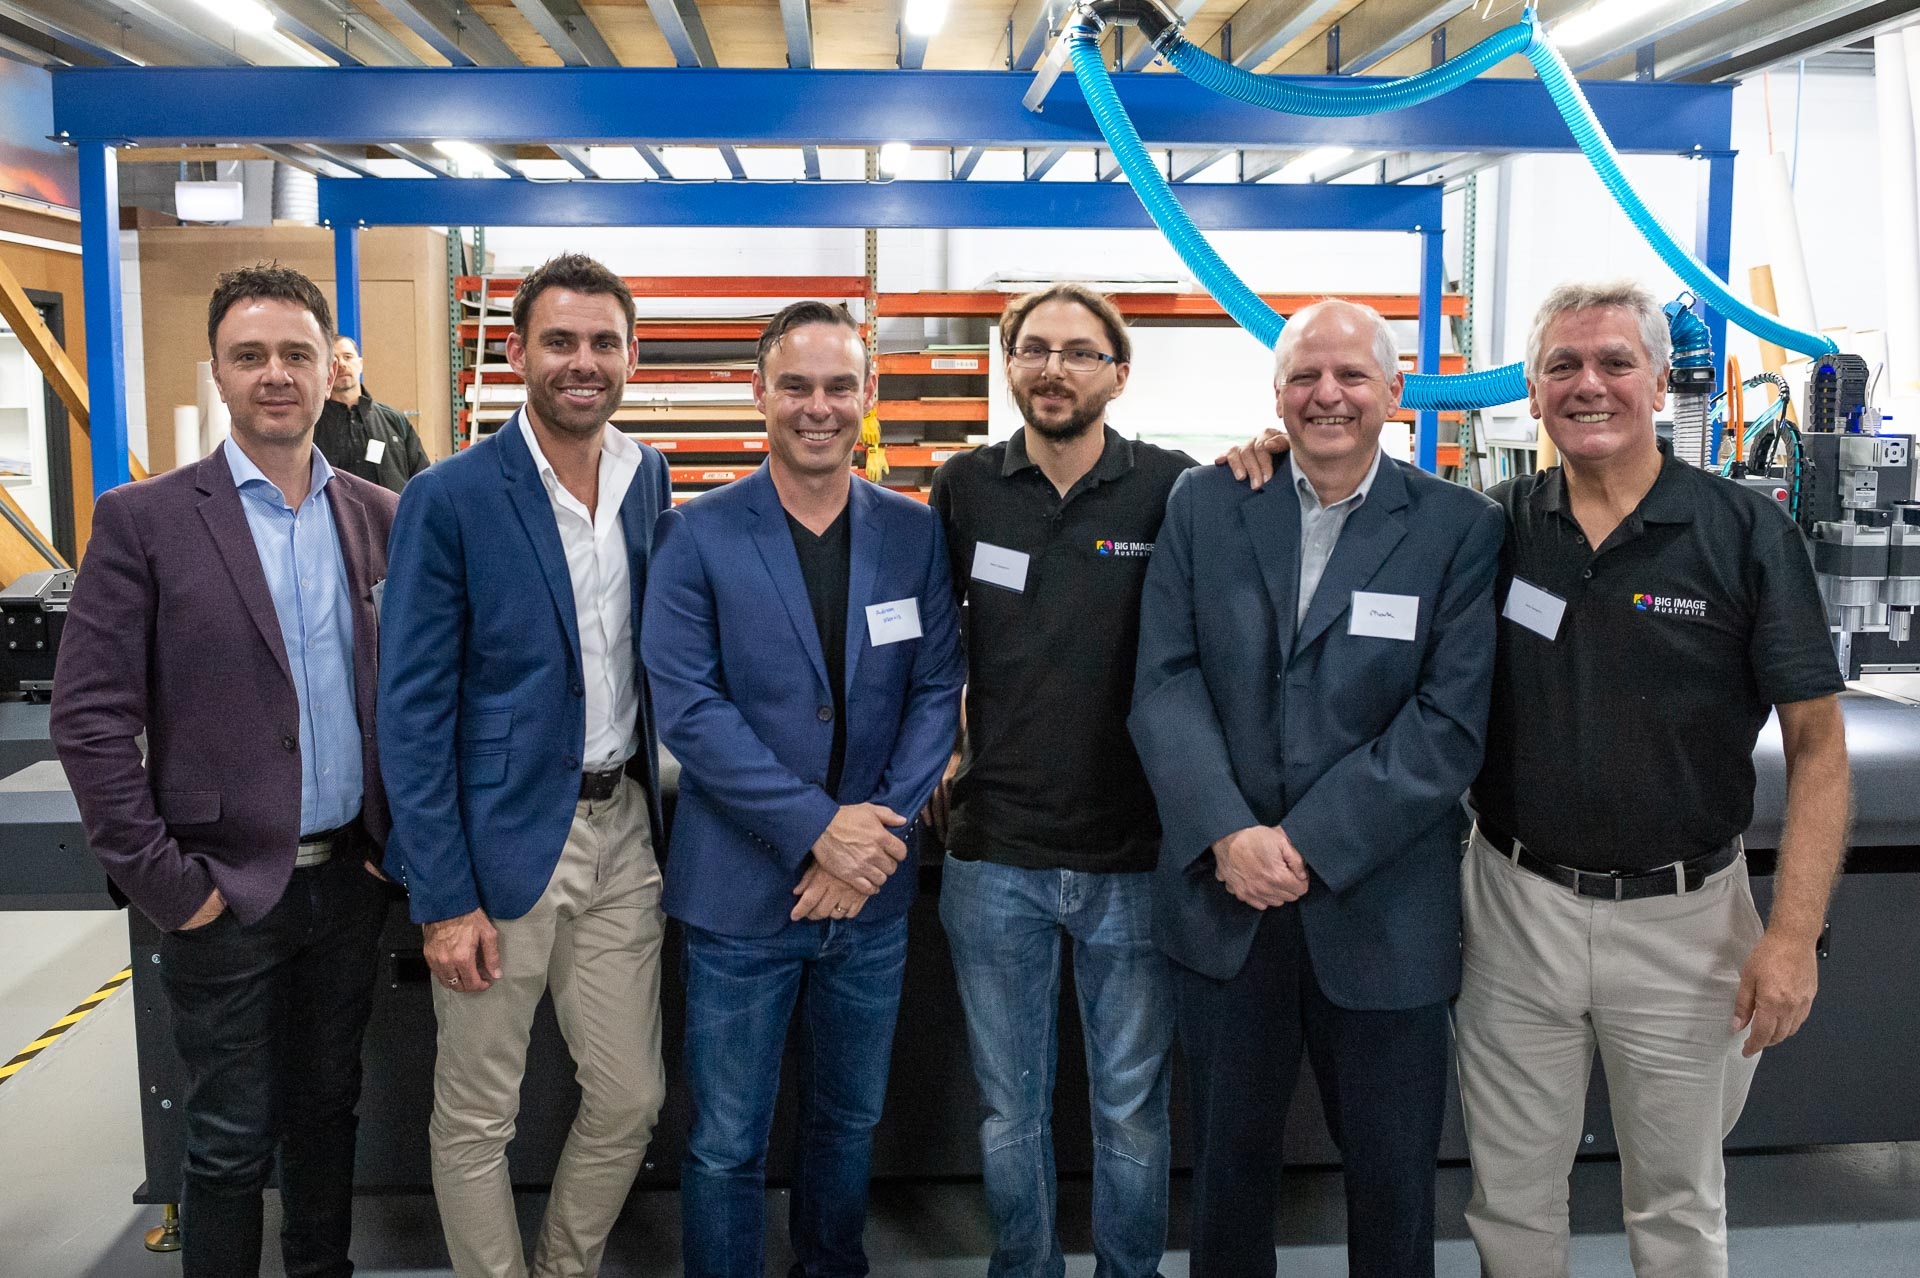 Big impact: (l-r) Paul Gerasolo, account manager, Graphics Media, HVG; , Mark Thomson, SA state manager, HVG; Adrian Morris, business manager, strategic growth, HVG; Dion Capagreco, Big Image; Mark Bibo, Gerber; Carlo Capagreco, Big Image